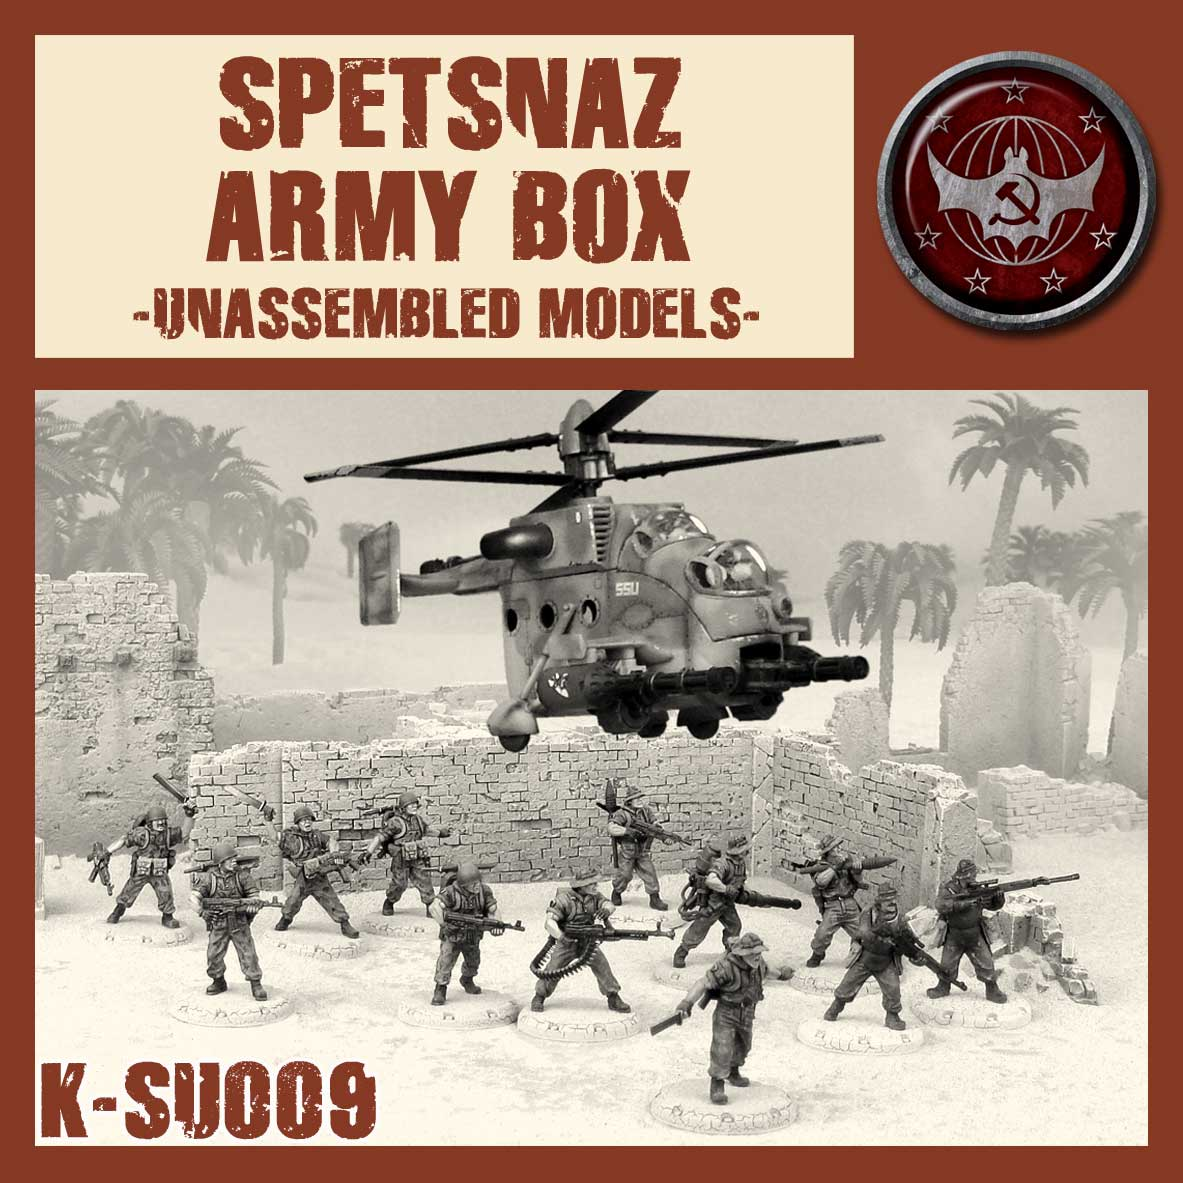 Spetsnaz Army Box Kit